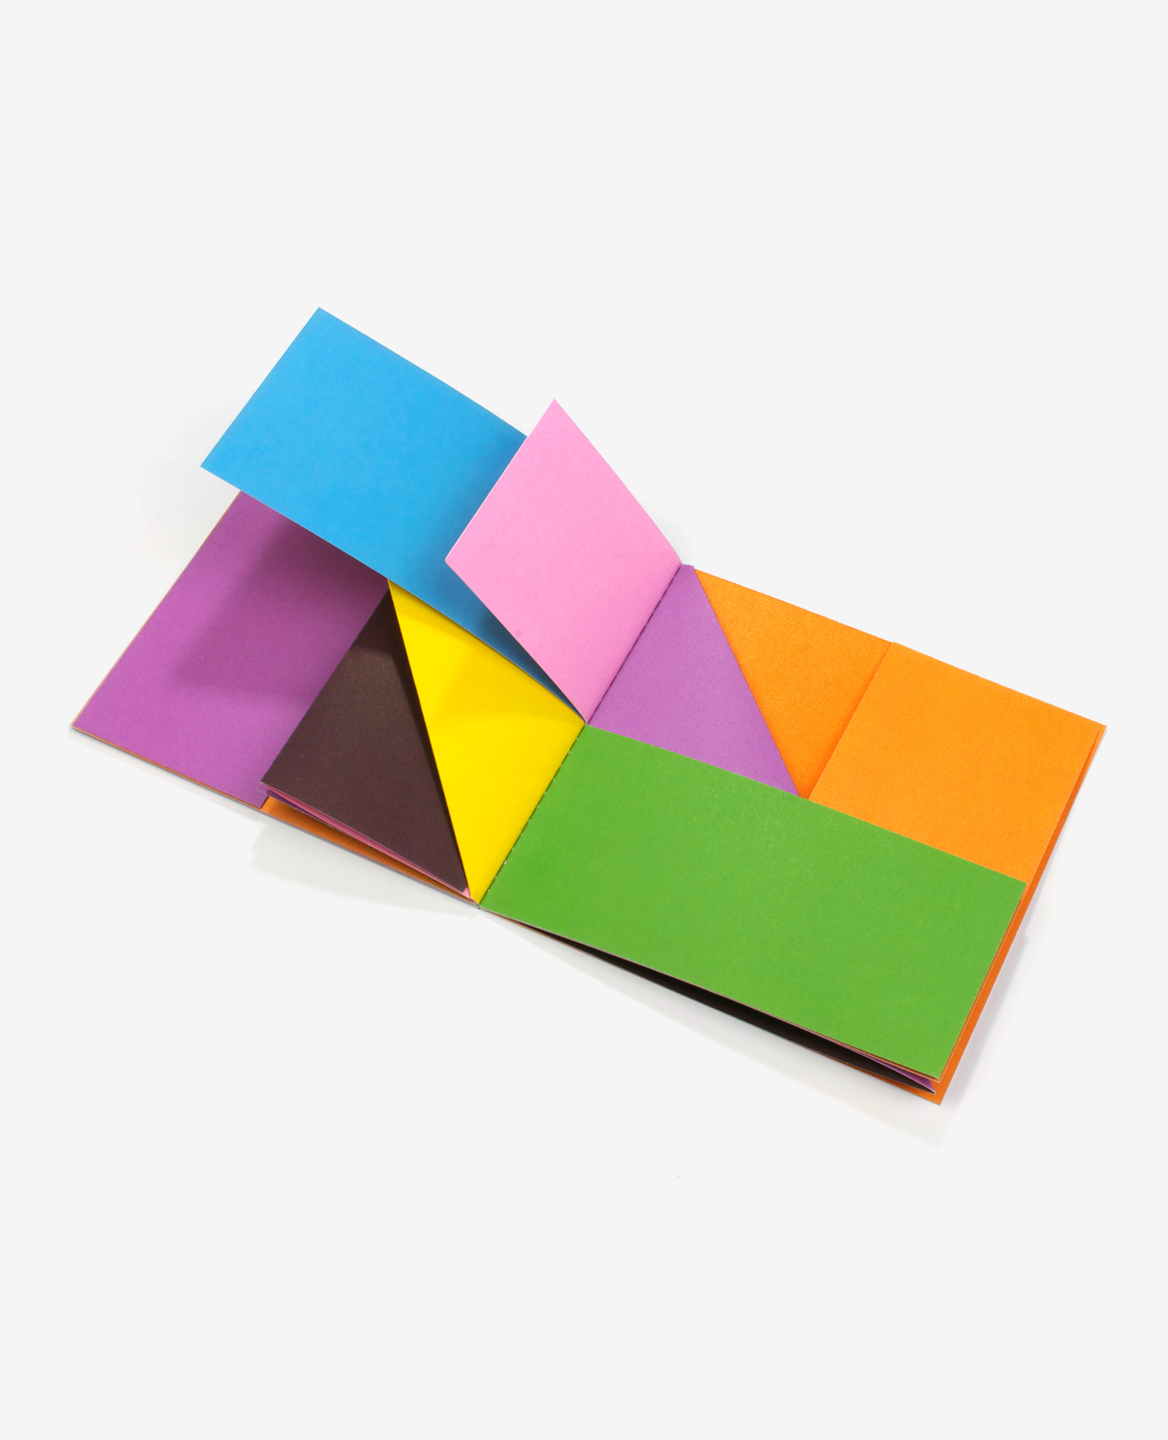 General view of the book Colors by Antonio Ladrillo published by Éditions du livre